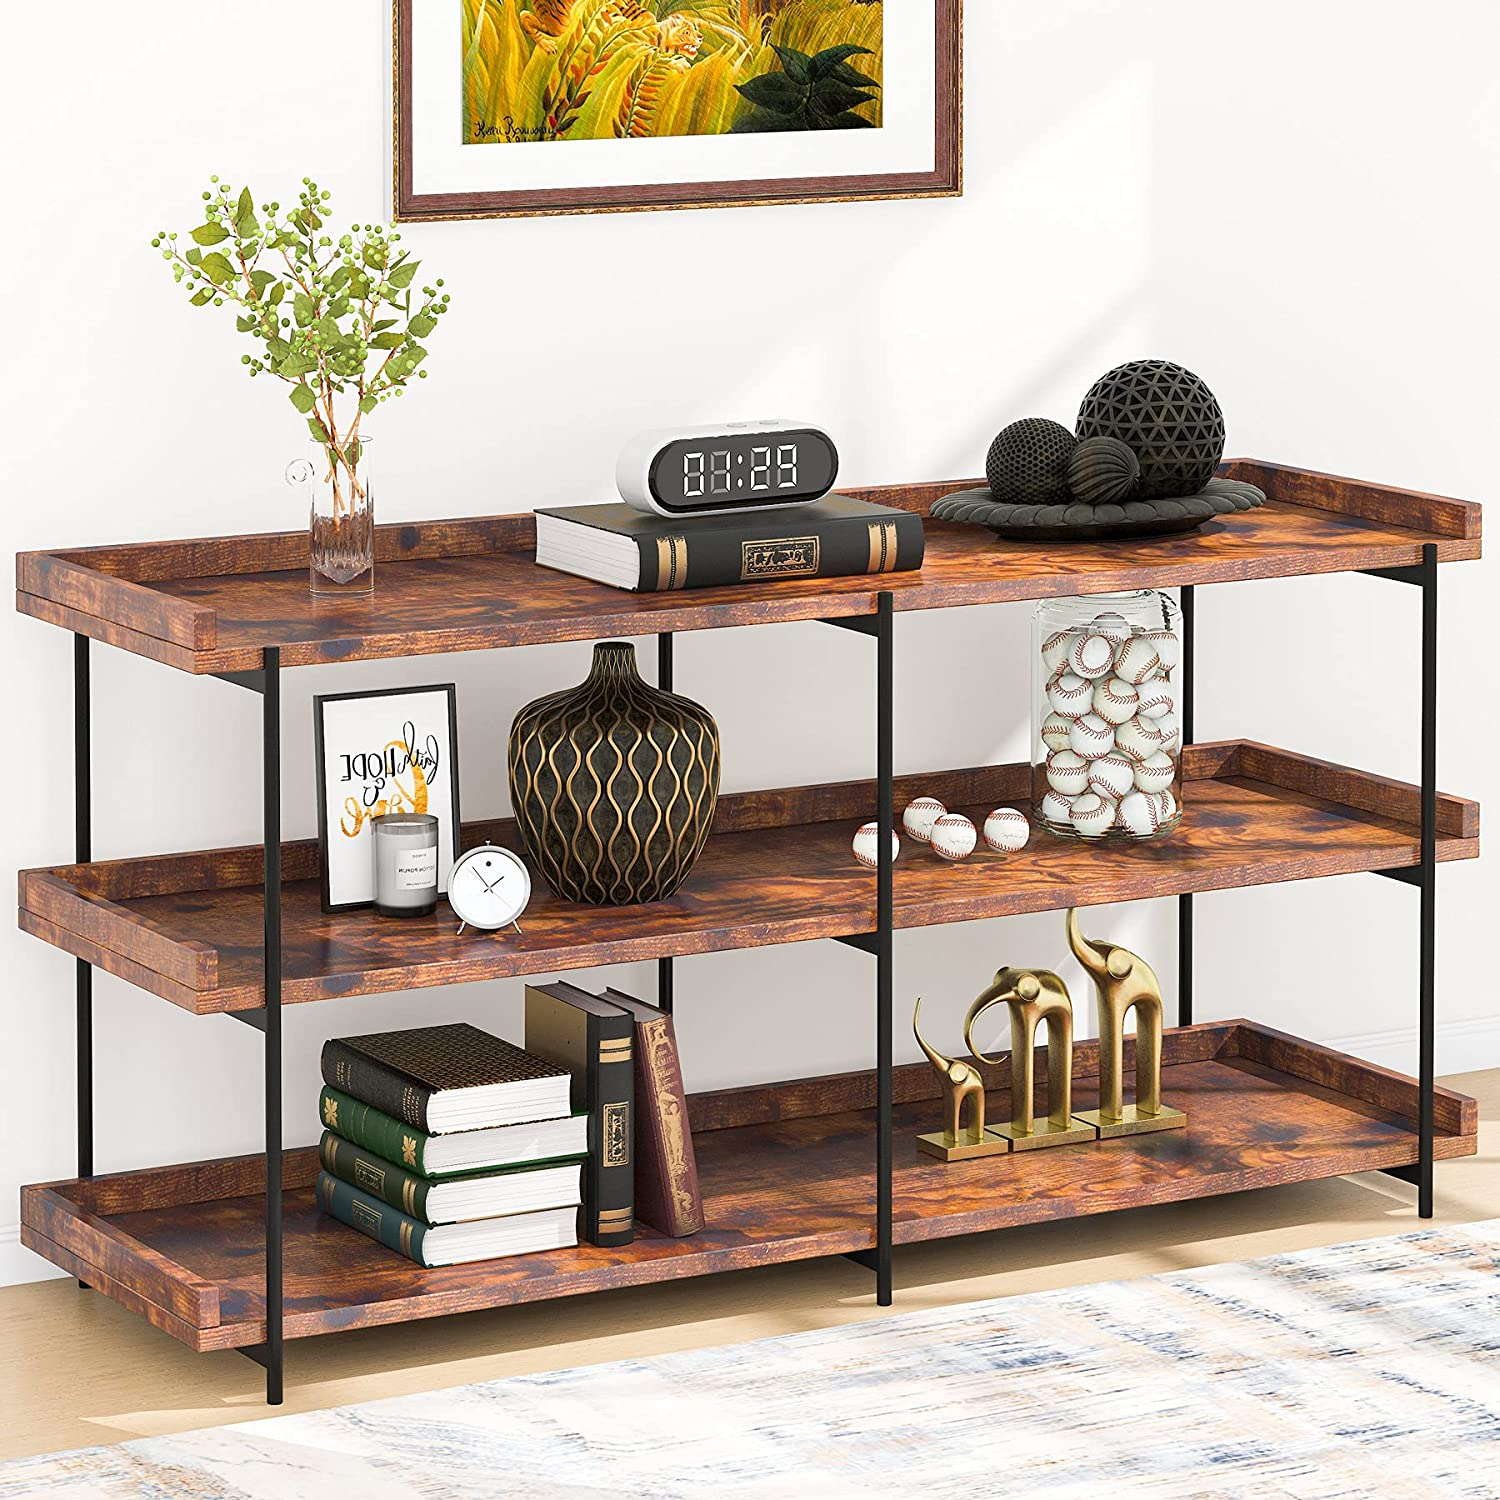 Tribesigns Industrial Sofa Console Table, 20 Inches Entryway Table with  Storage Shelves, 20 Tier Shelf TV Stand for Entryway, Hallway, Living Room,  ...